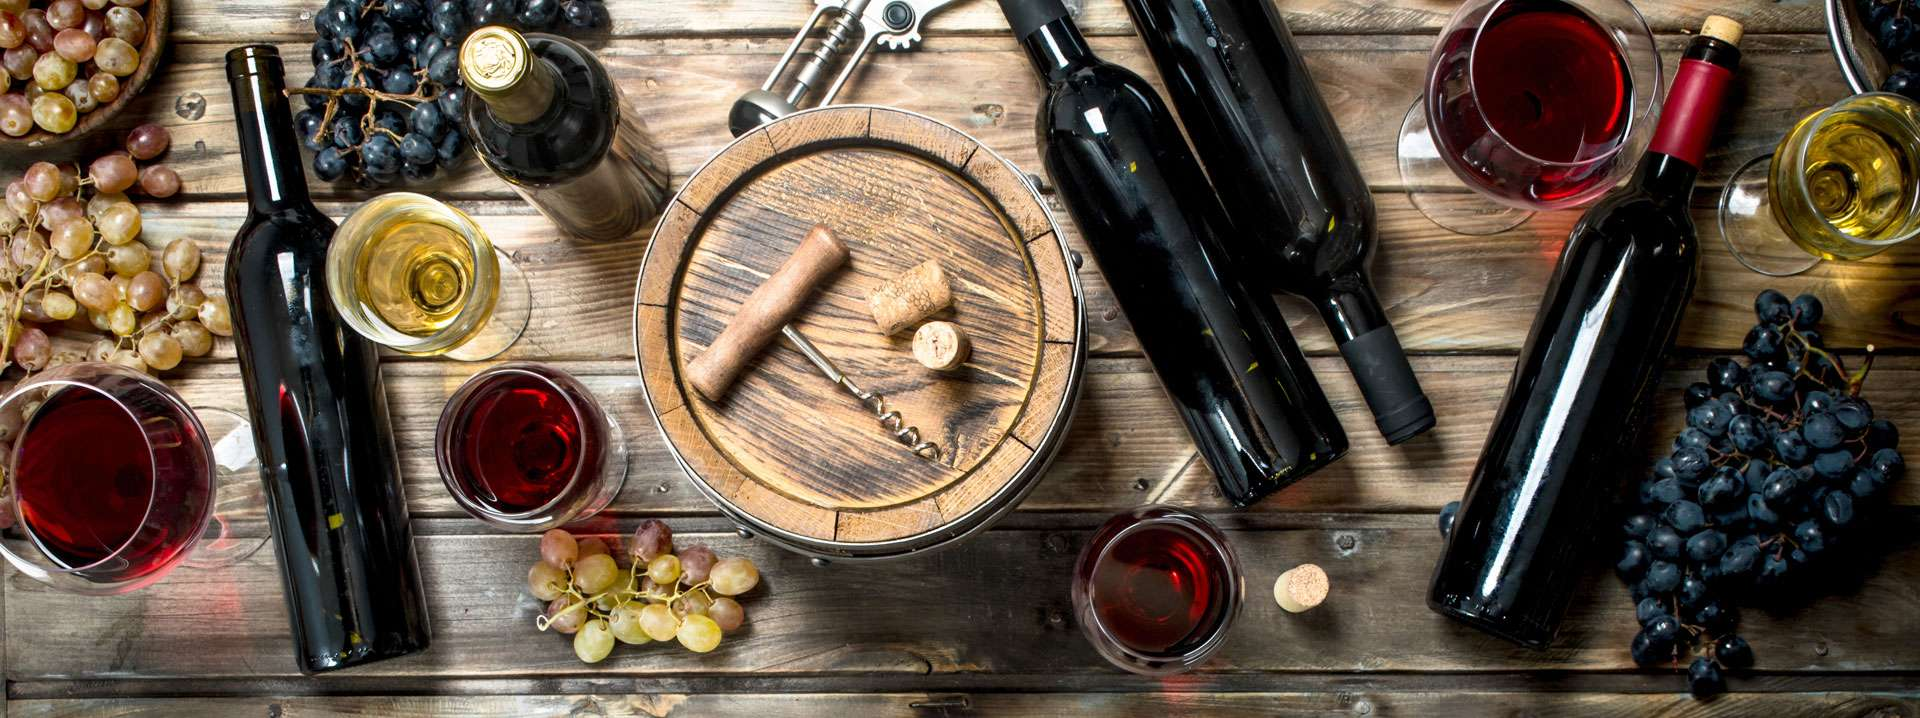 7 Umbrian Wines to Discover on Your Next Trip